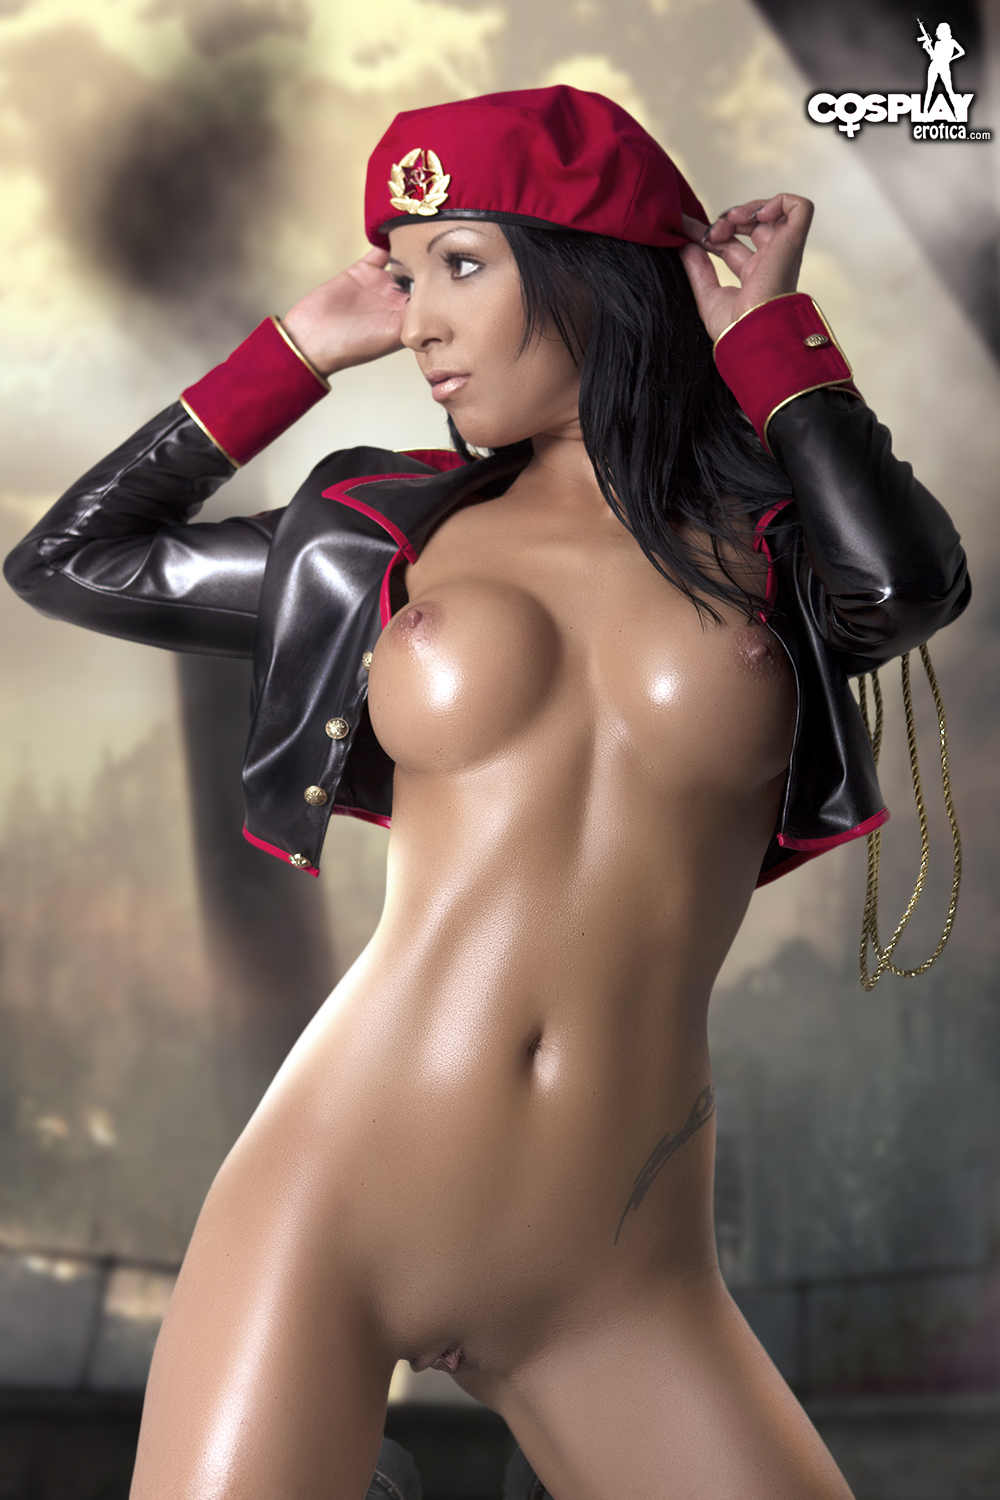 cosplay girls nude